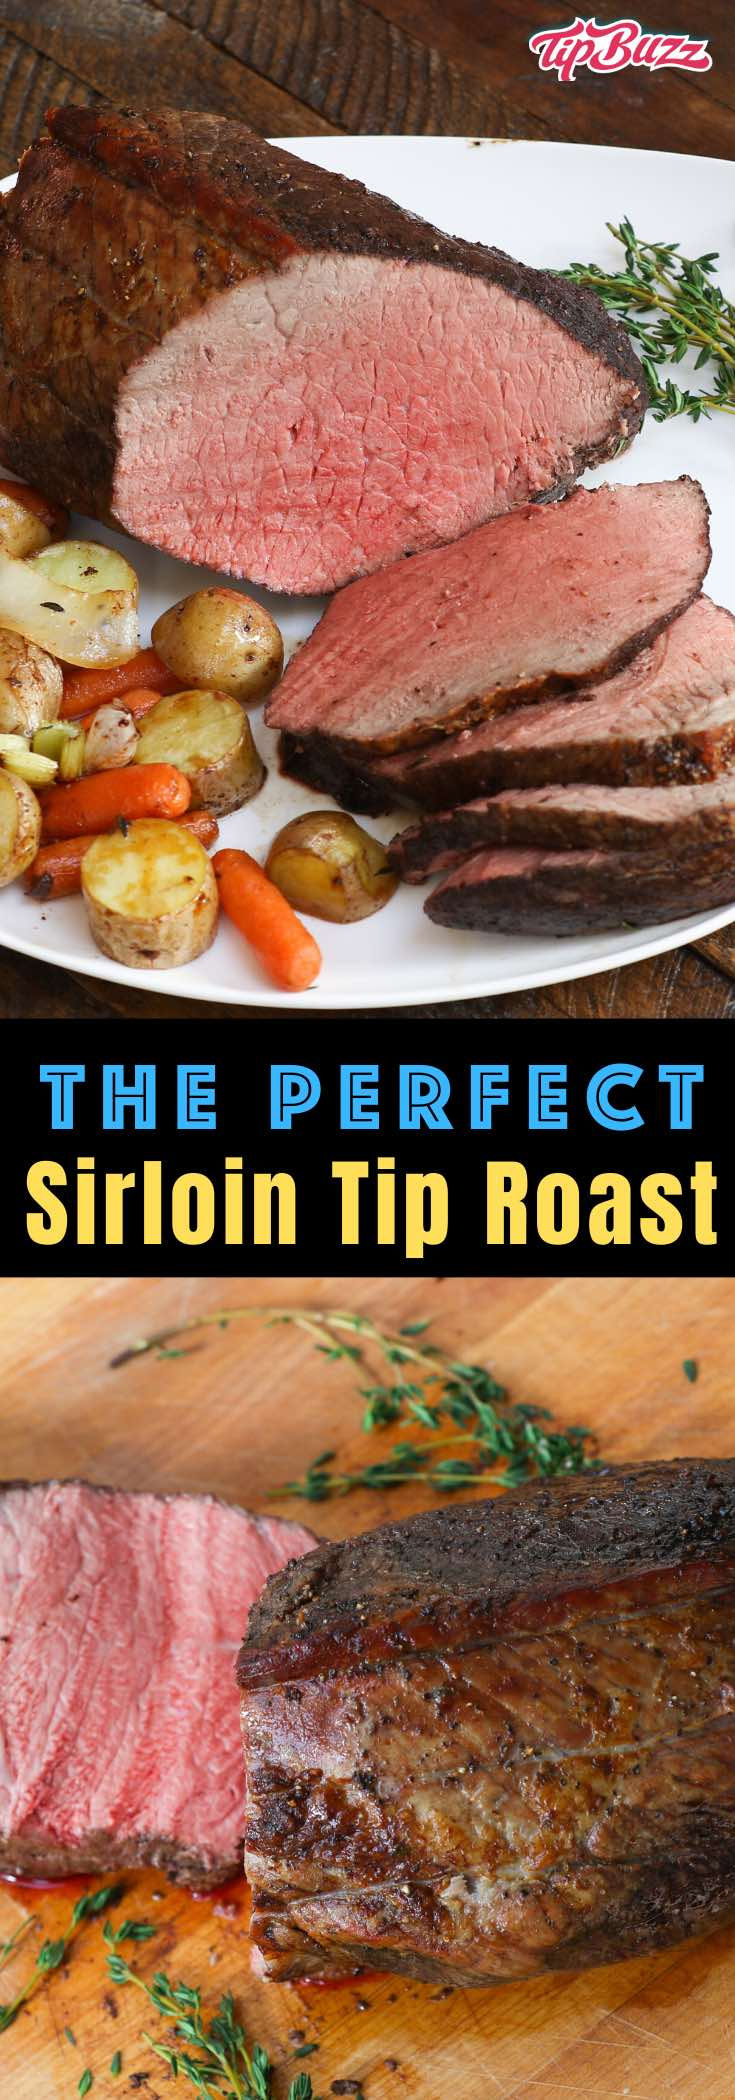 This Sirloin Tip roast is easy to make for a flavorful dinner that's budget-friendly and easy to make. Use the leftovers for sandwiches, soups and salads! #sirlointip #sirloinroast